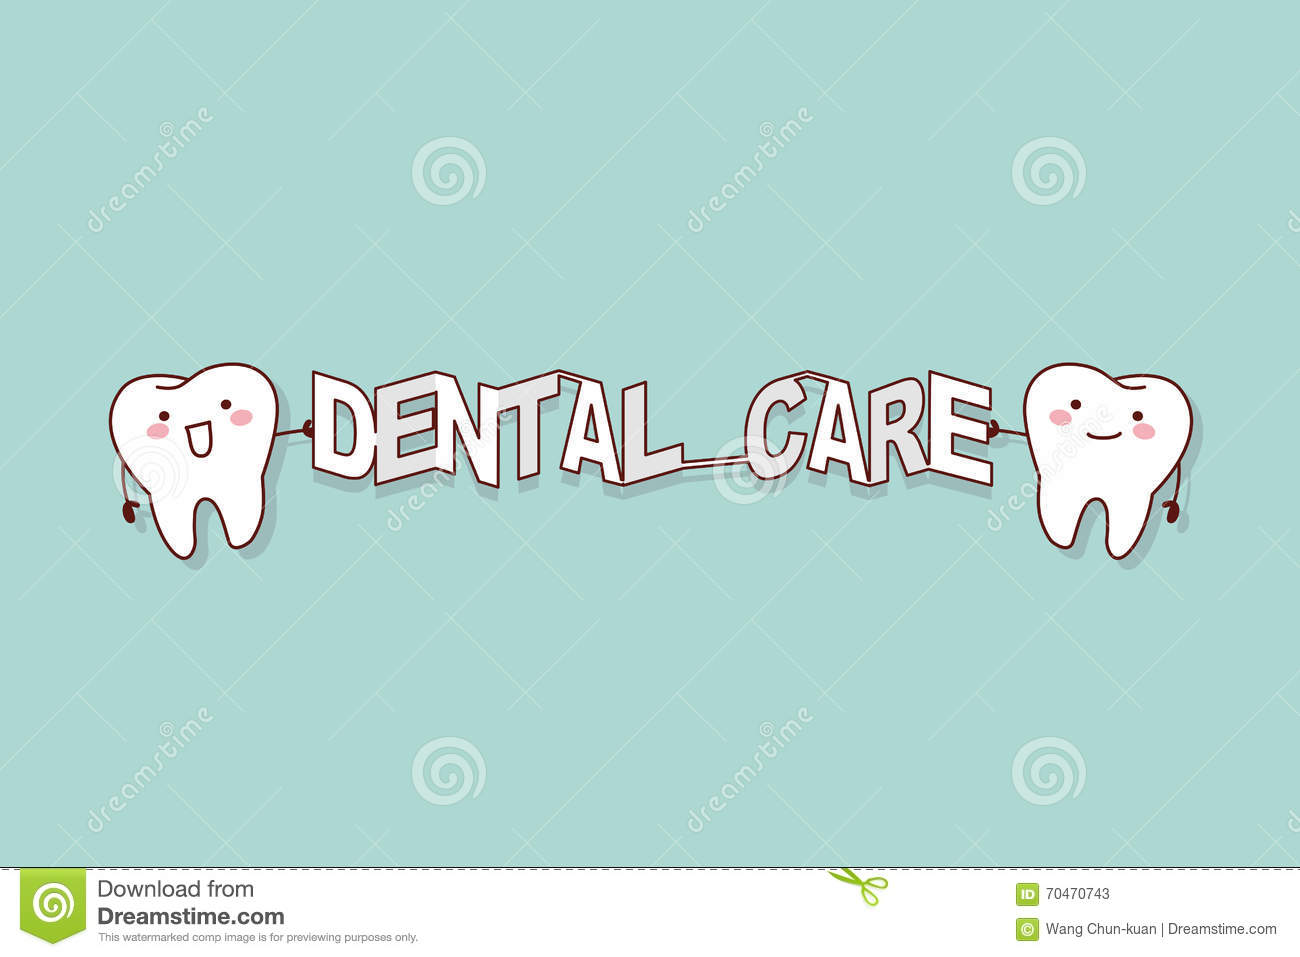 tooth-dental-care-word-cartoon-paper-great-concept-70470743.jpg